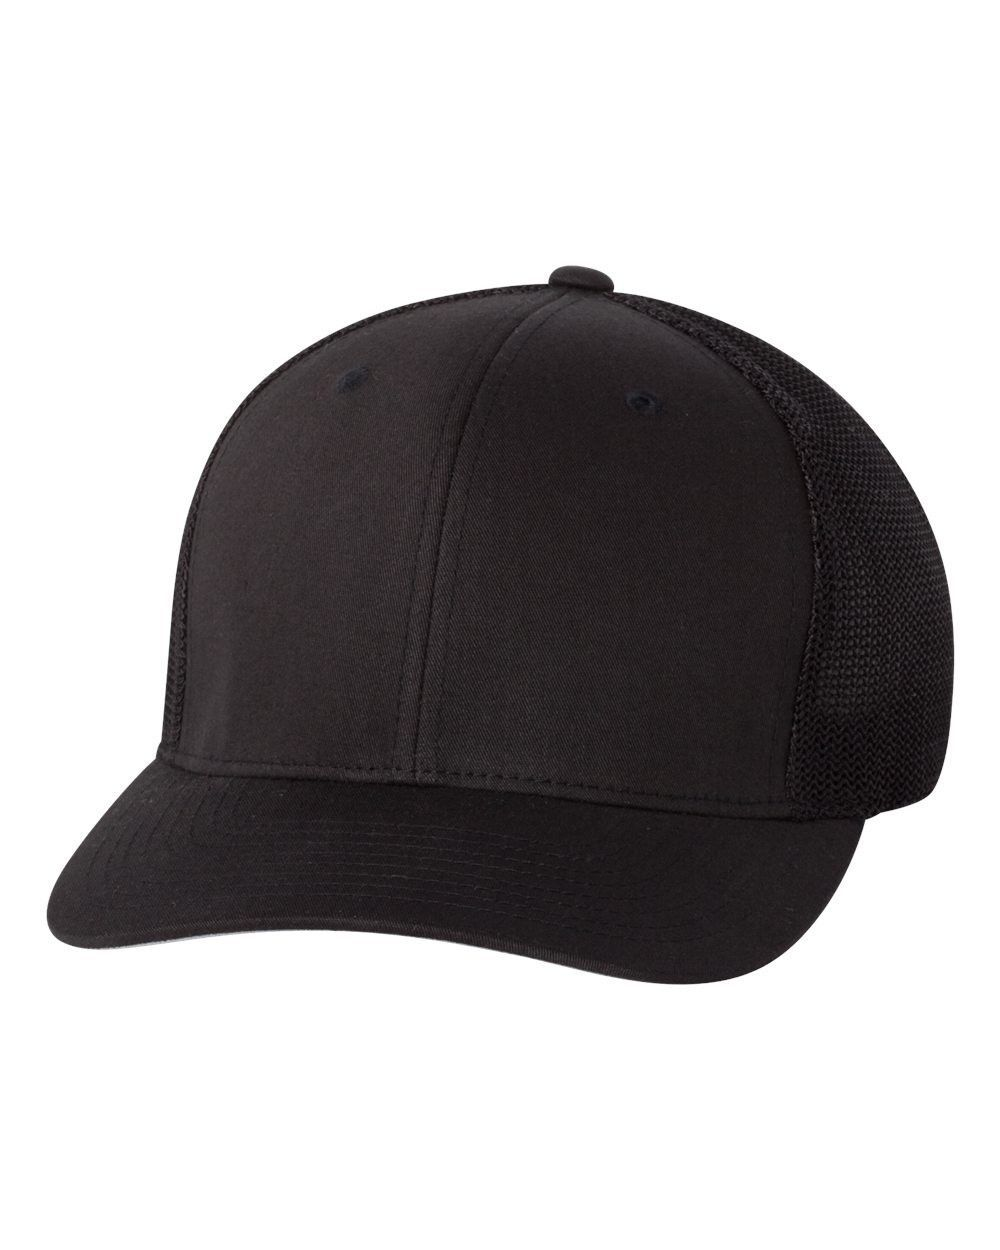 Flexfit - Trucker Cap - 6511 Black  0f8b29565402